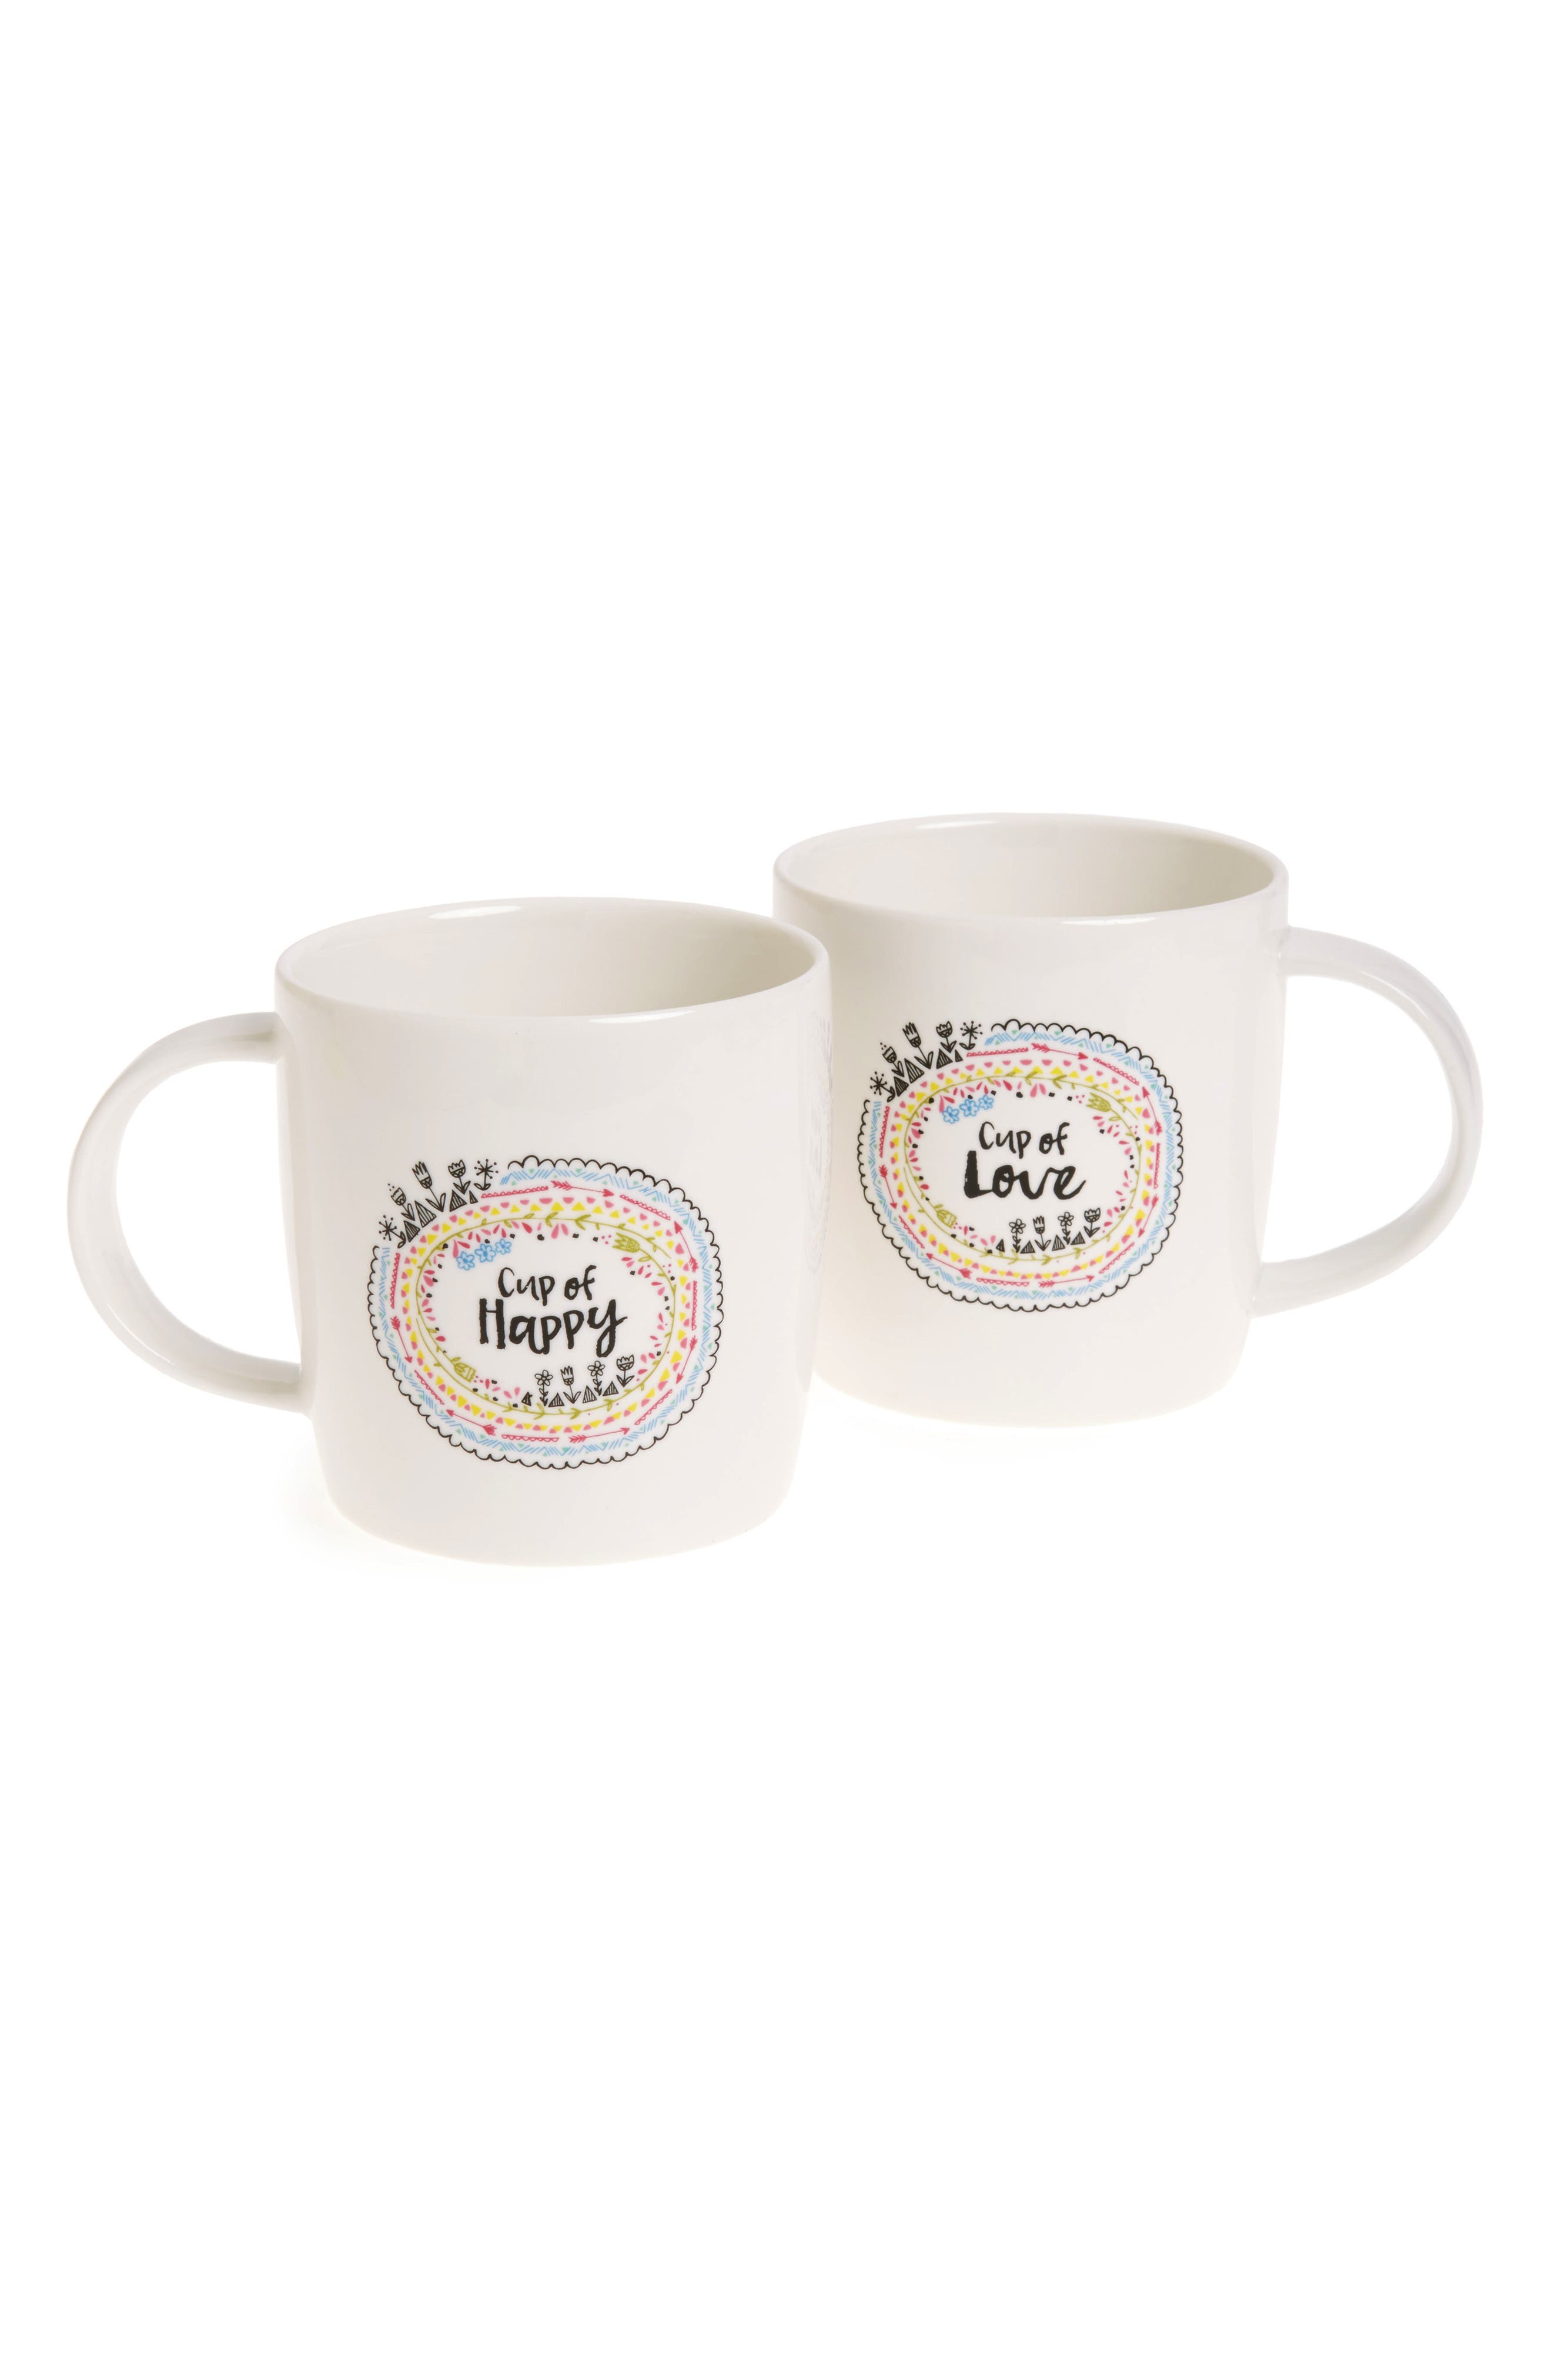 Cup of Happy & Cup of Love Set of 2 Mugs,                             Main thumbnail 1, color,                             900